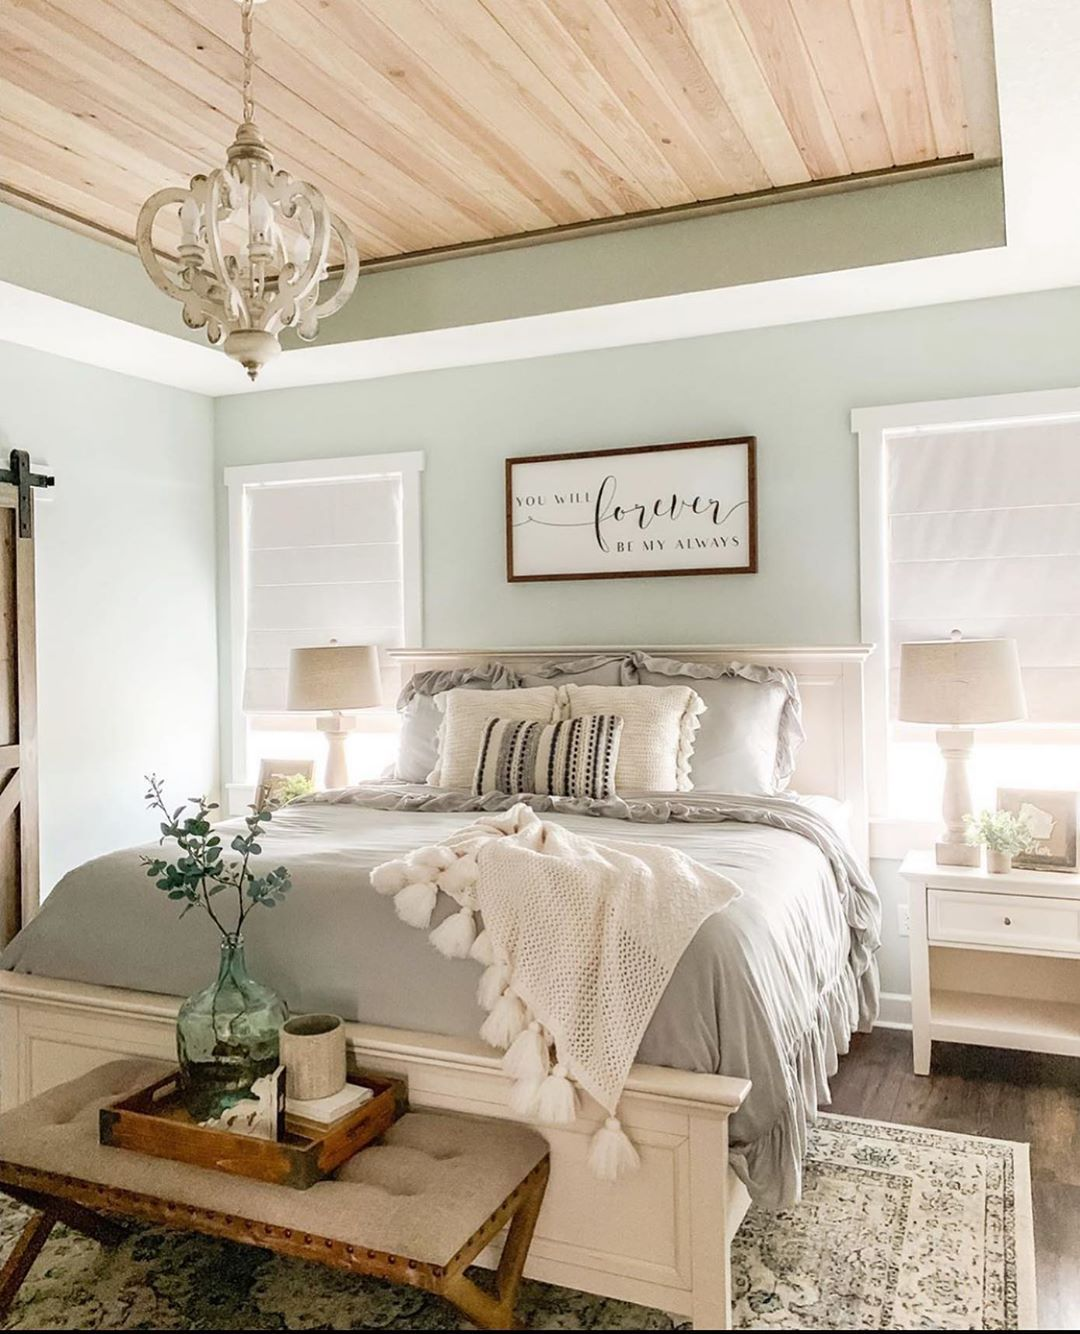 F A R M H O U S E || What do you all think of this bedroom by @remingtonranchfarmhouse? #smmakelifebeautiful #farmhouse #southernliving…